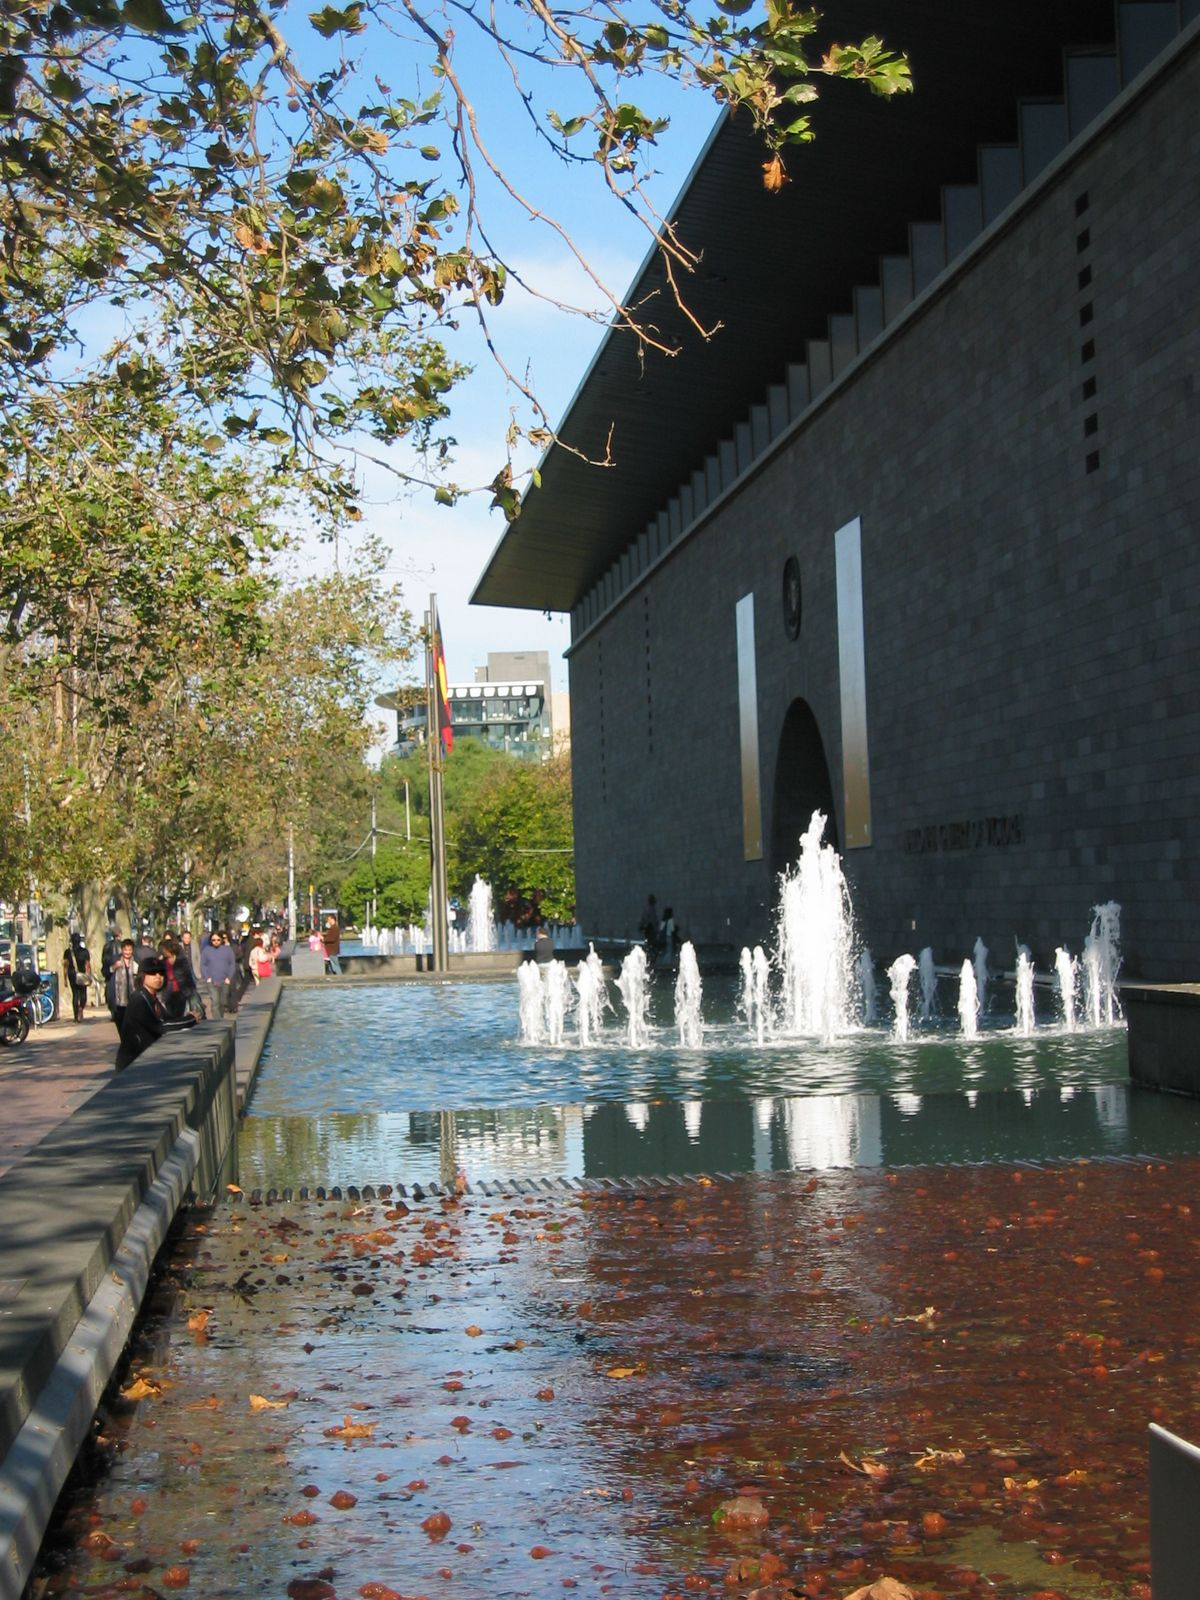 Simple simon says melbourne national gallery of victoria - What time does victoria gardens open ...